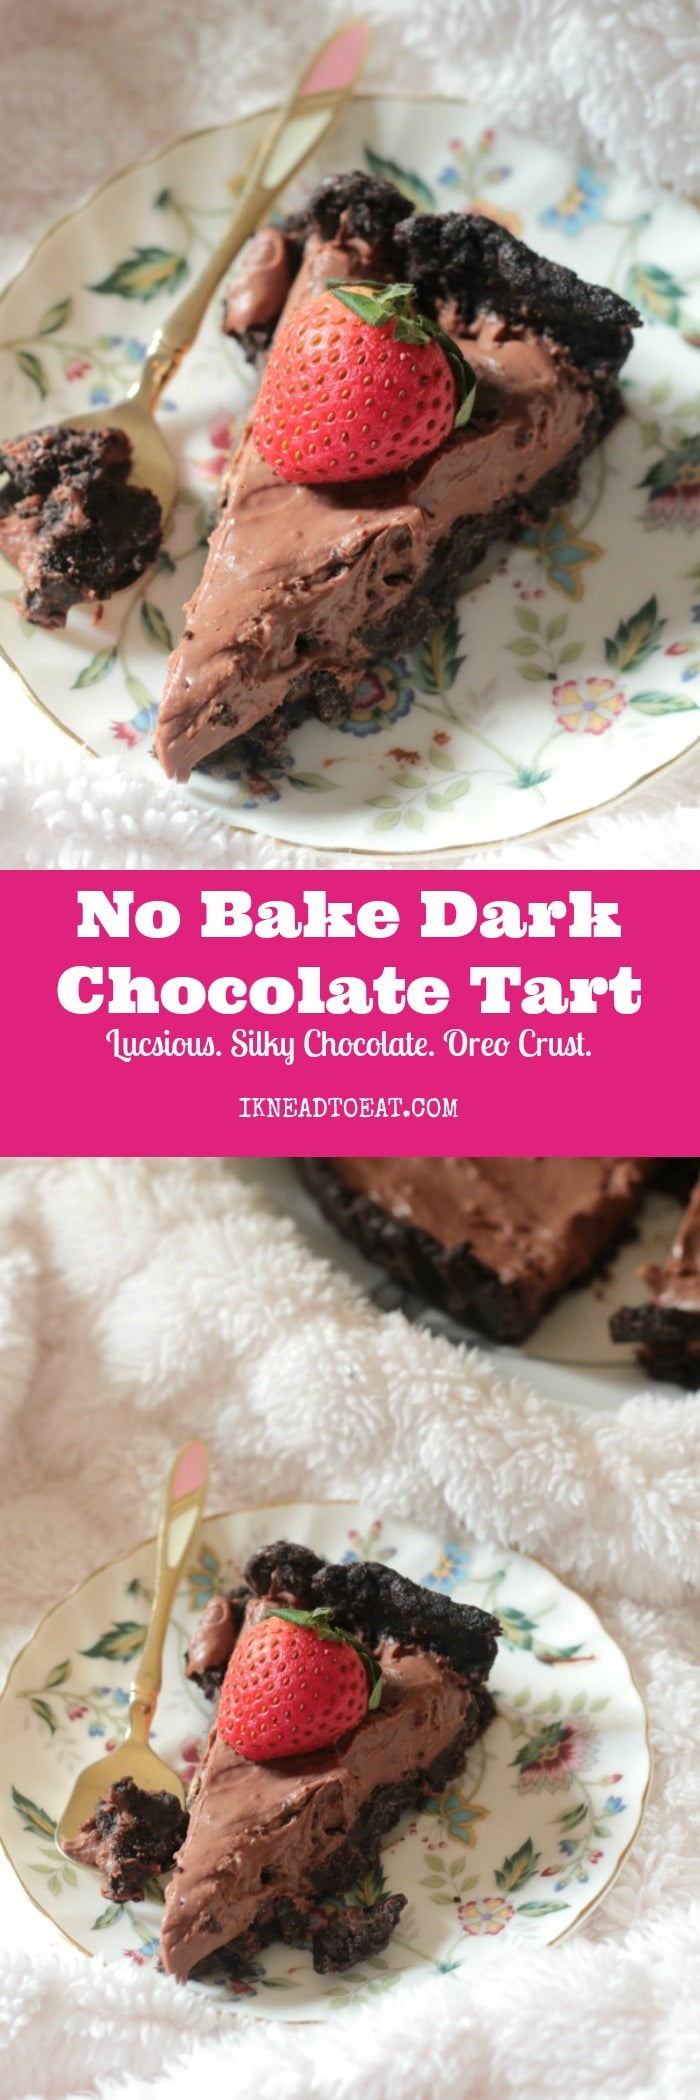 No Bake Dark Chocolate Tart